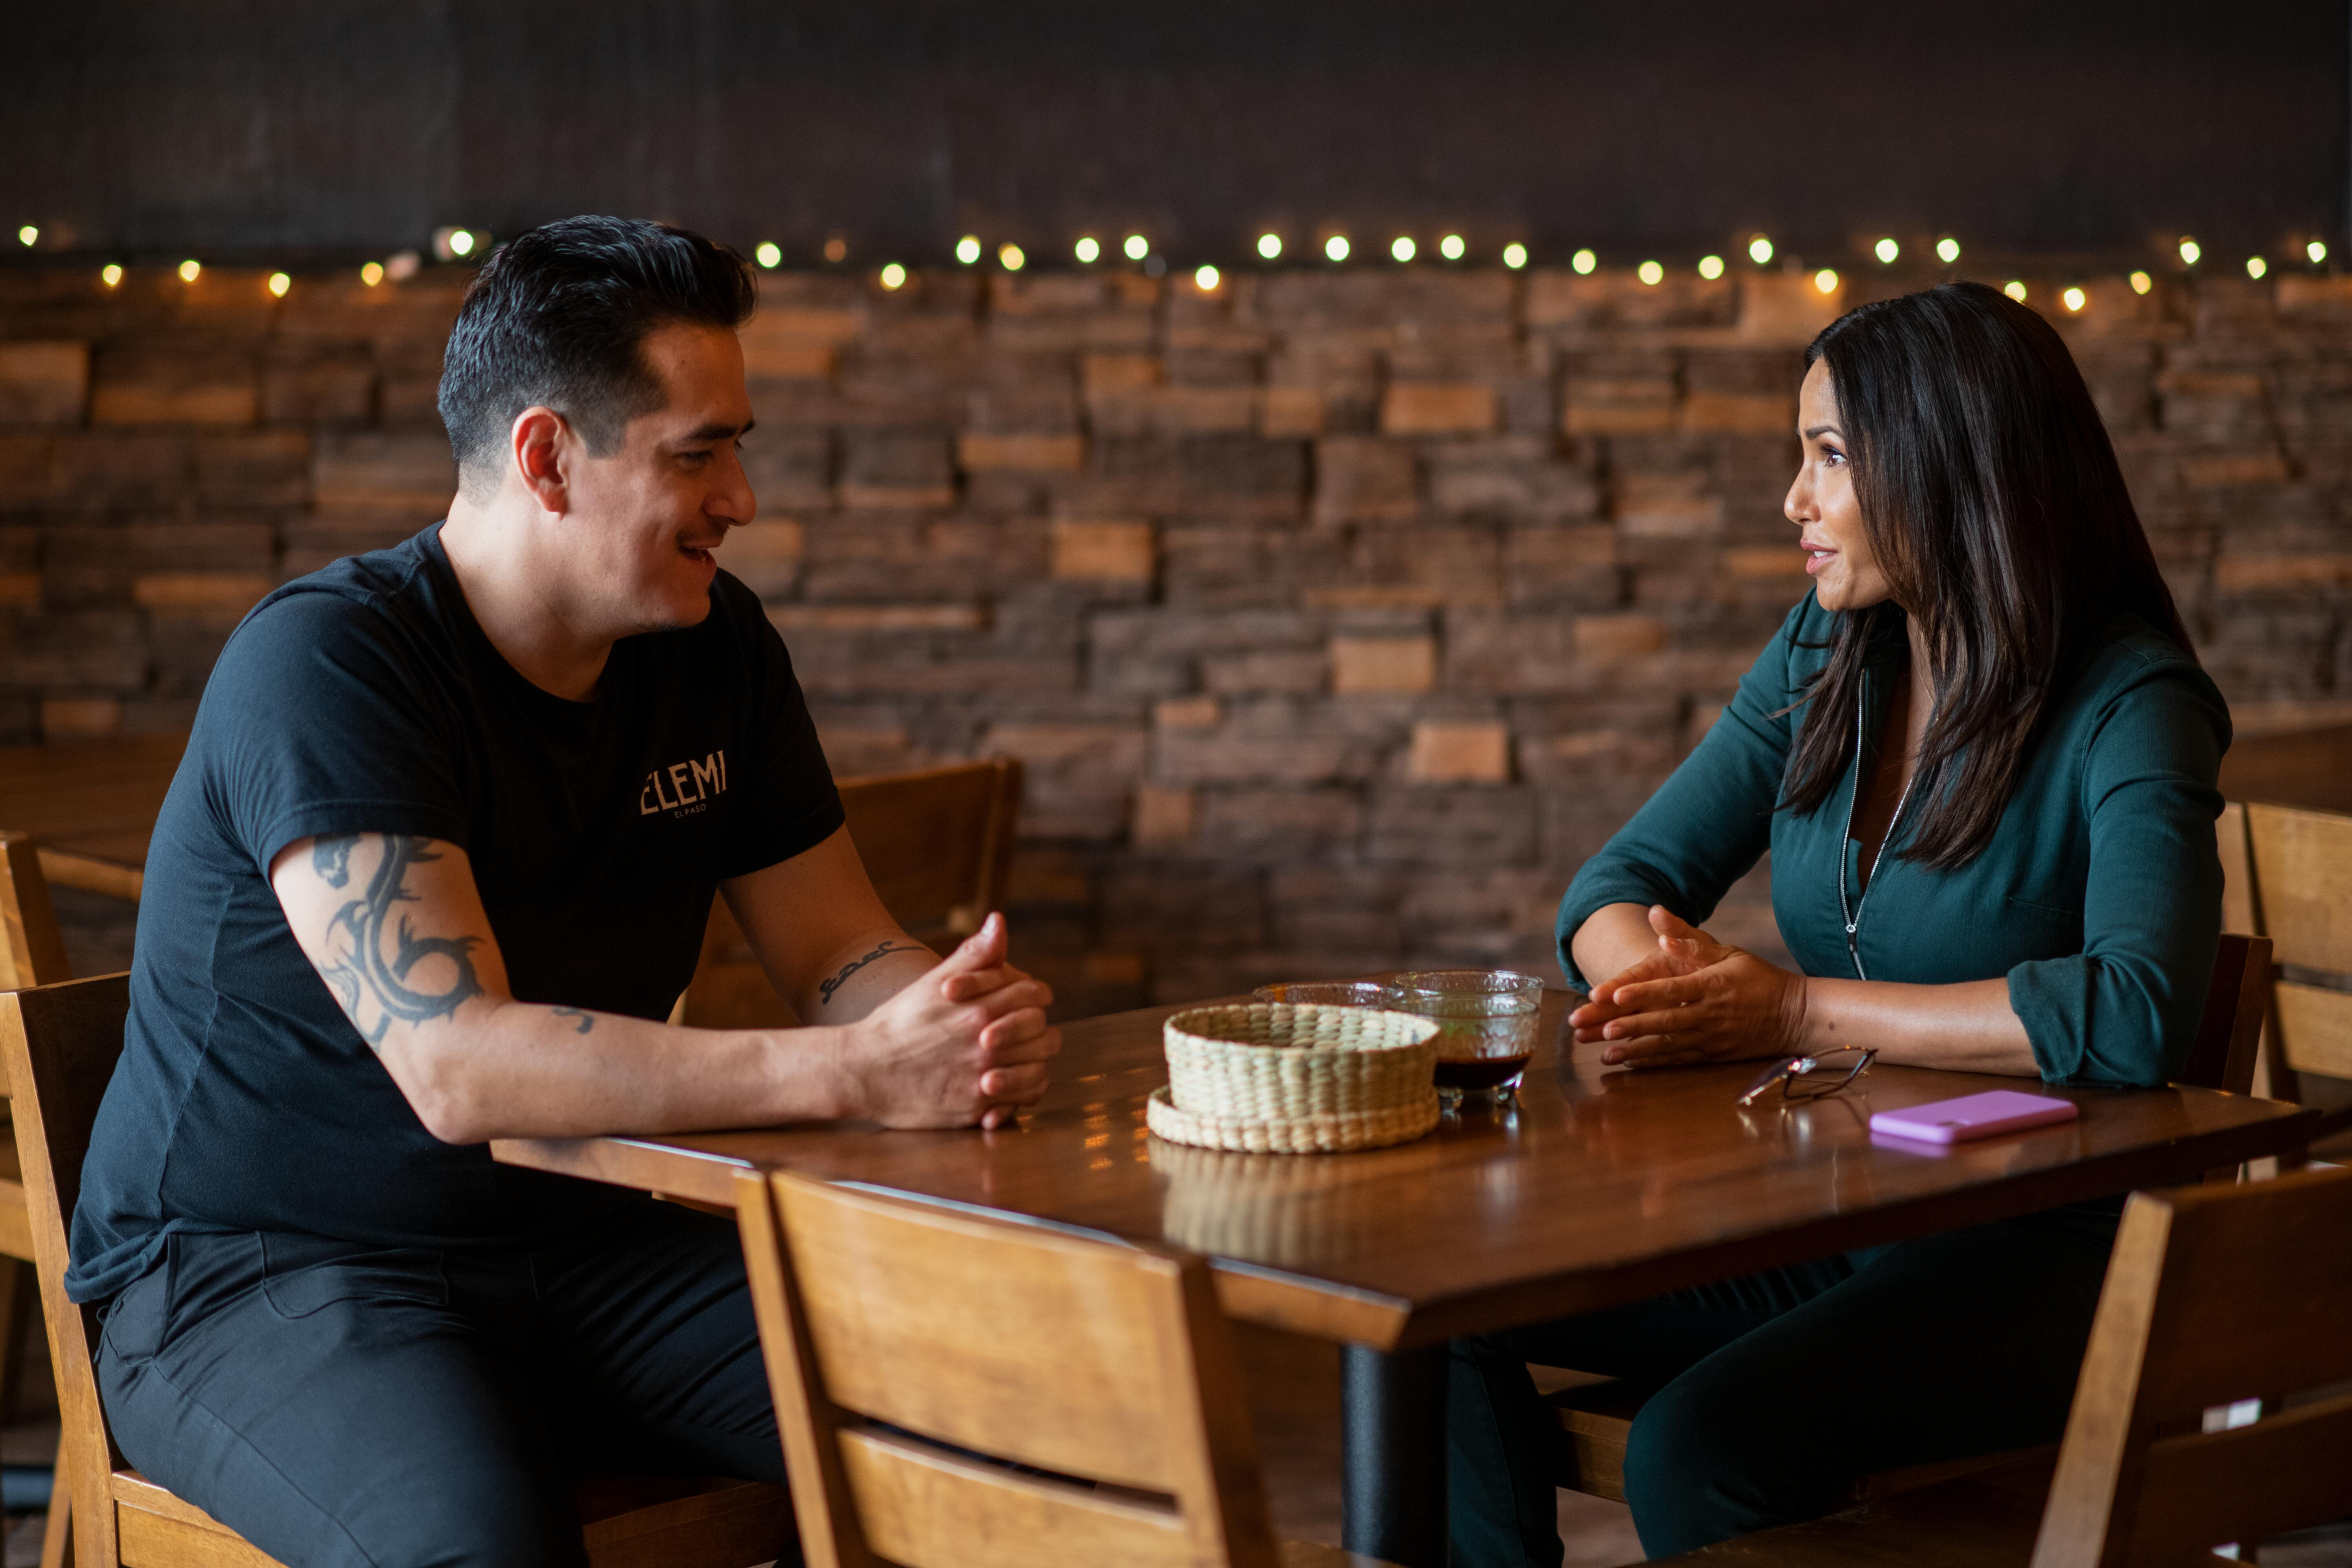 Padma Lakshmi Travels to El Paso to Talk Burritos & Immigration on 'Taste the Nation'